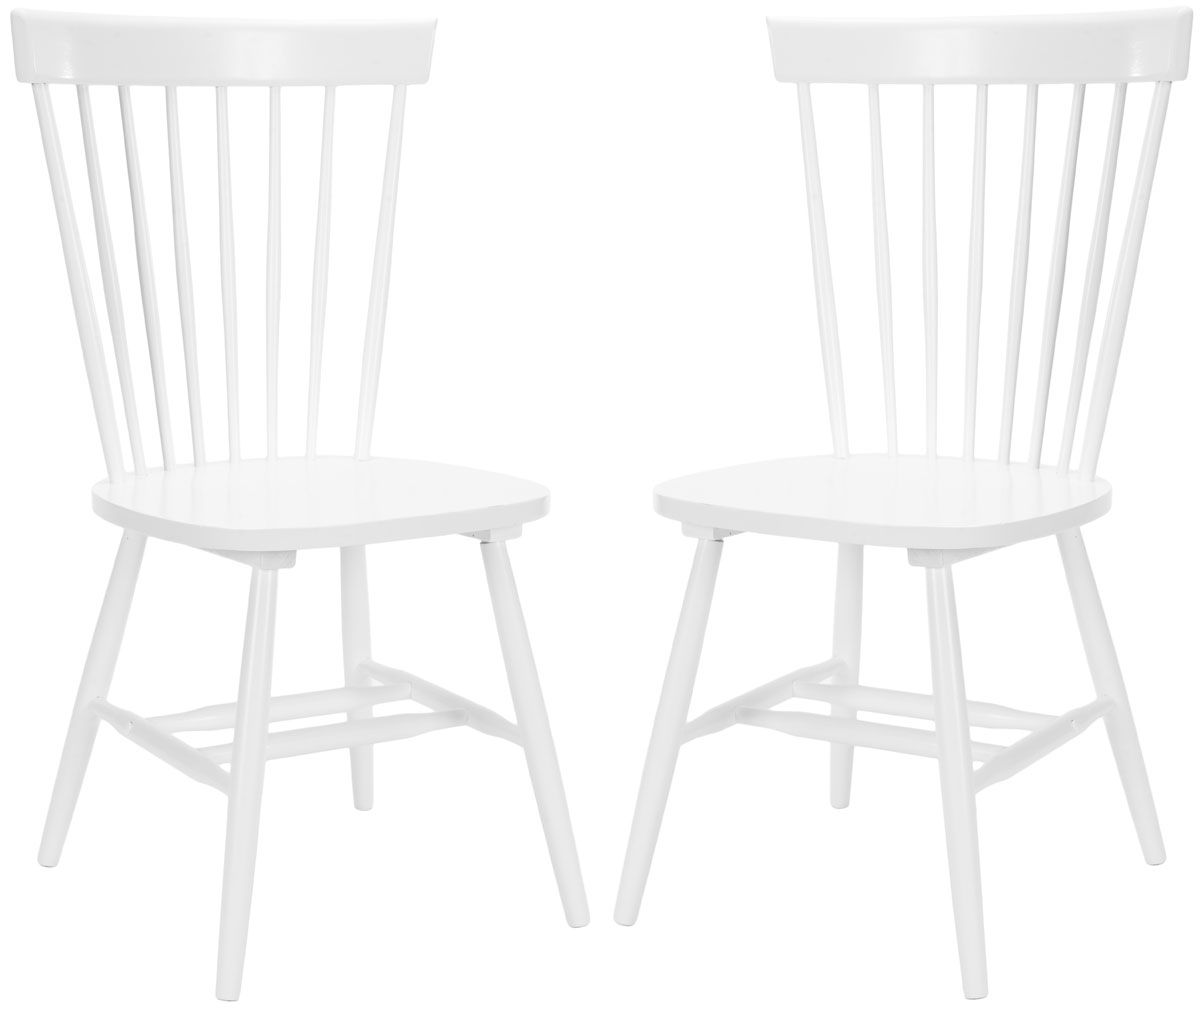 Amh8500aset2 dining chairs furniture by safavieh